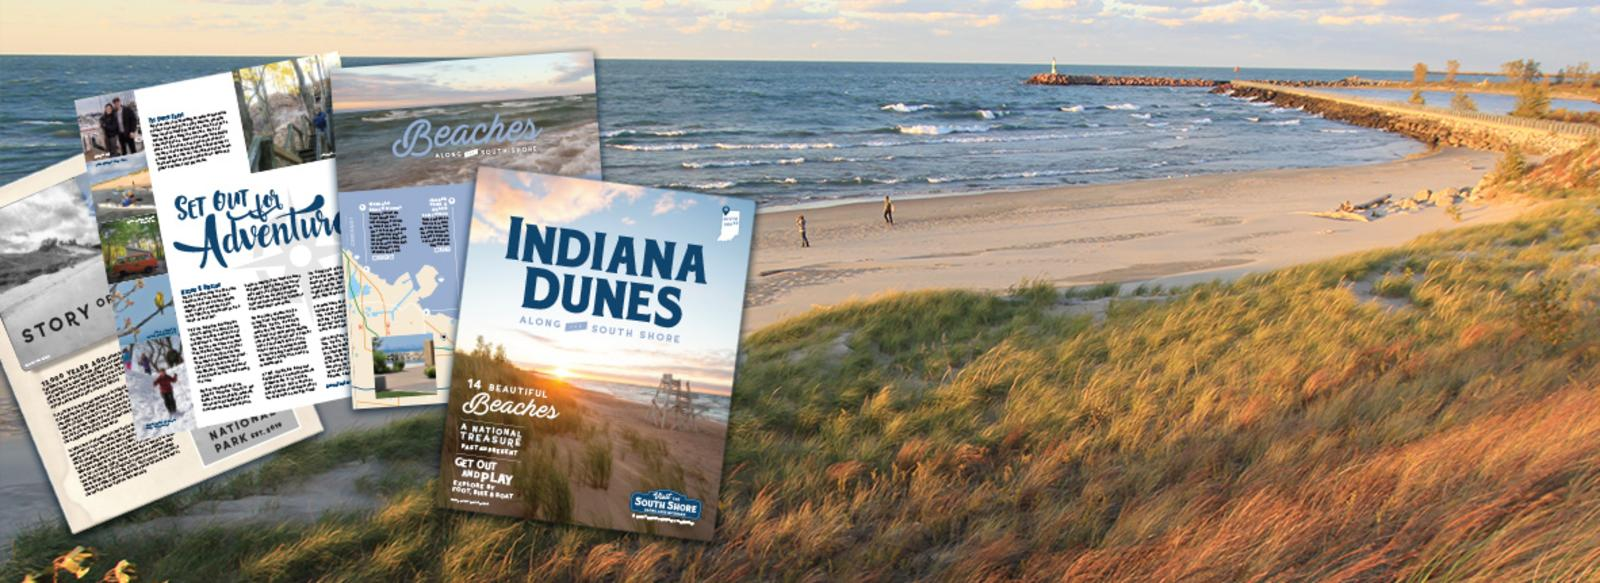 Download a Brochure on Indiana Dunes